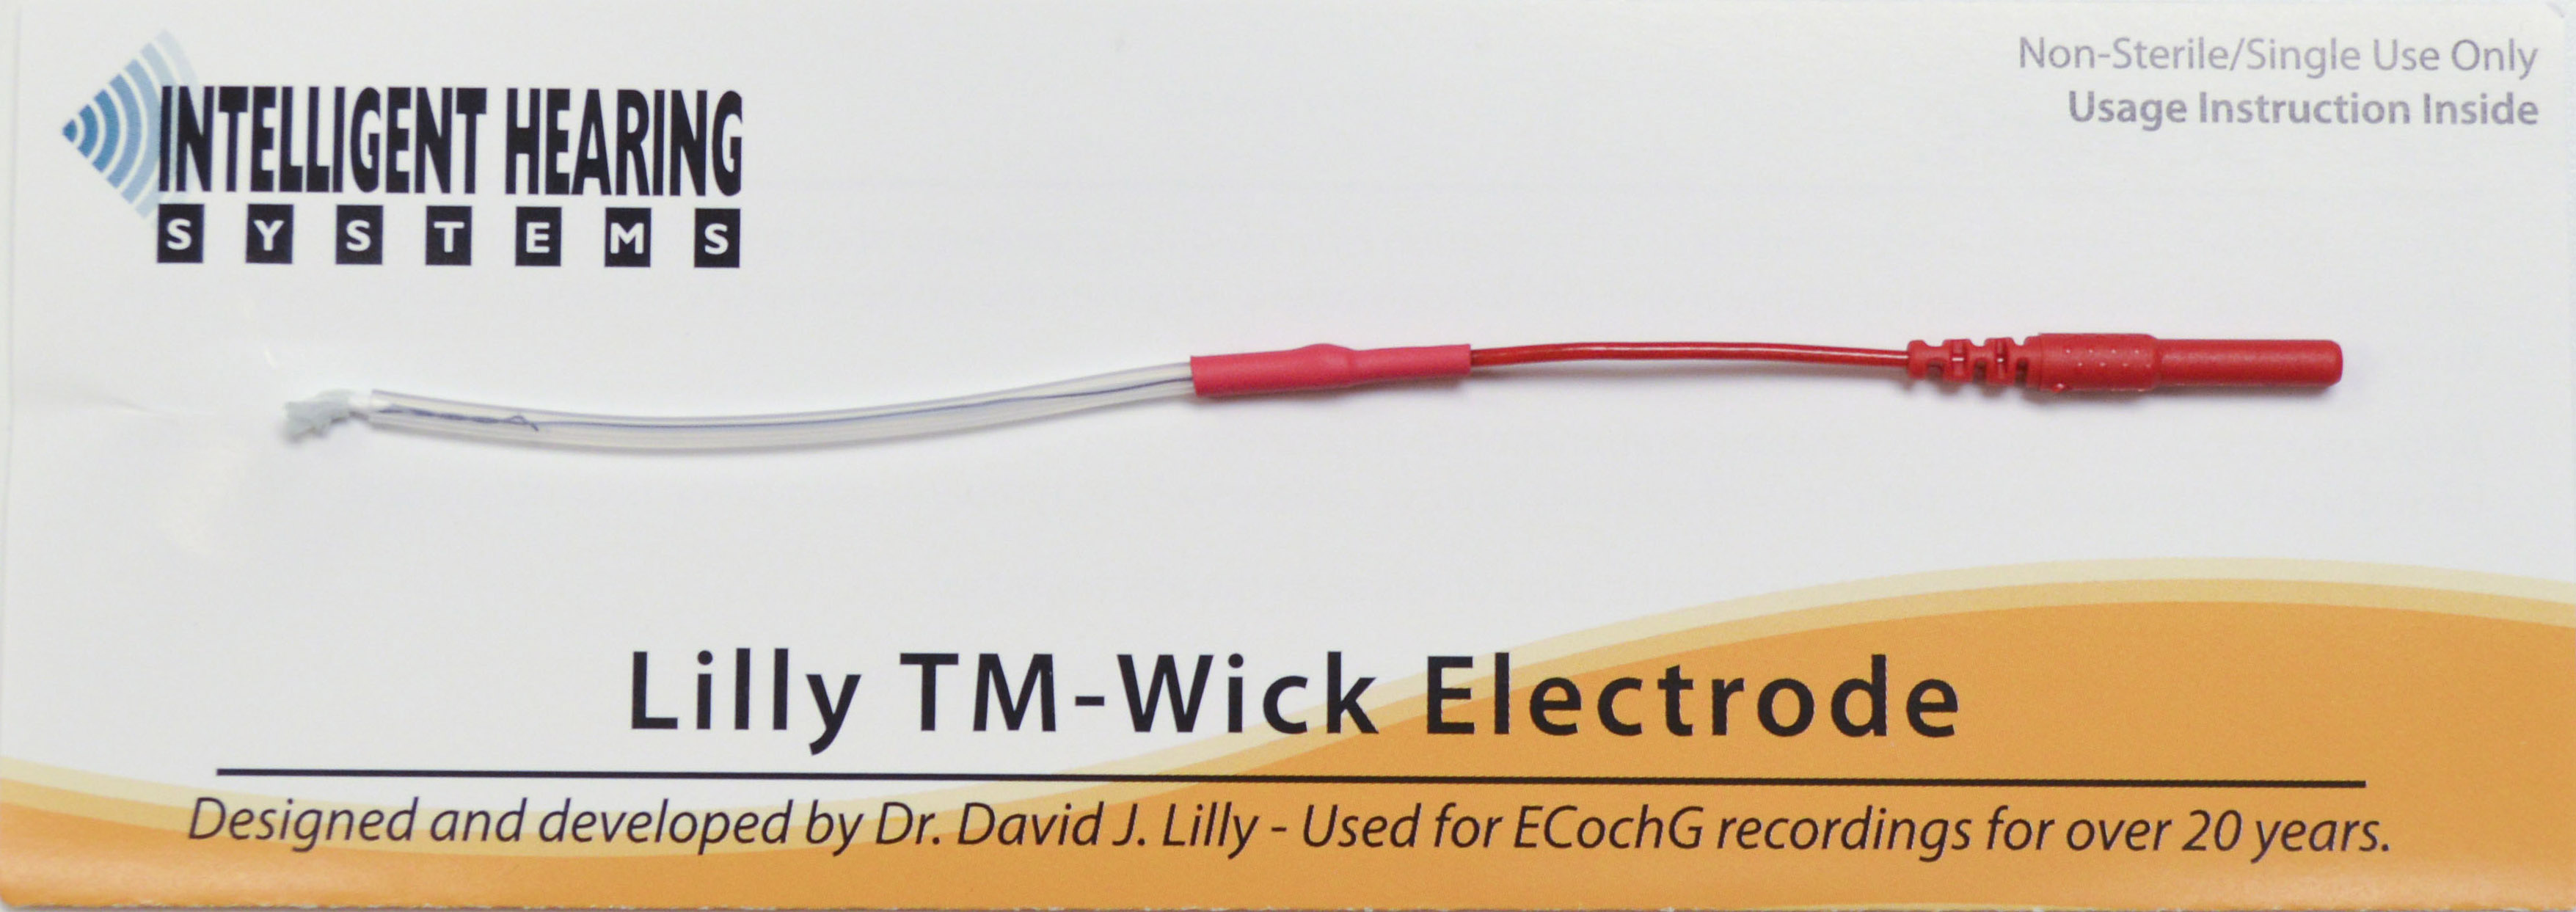 Lilly TM-Wick Electrodes